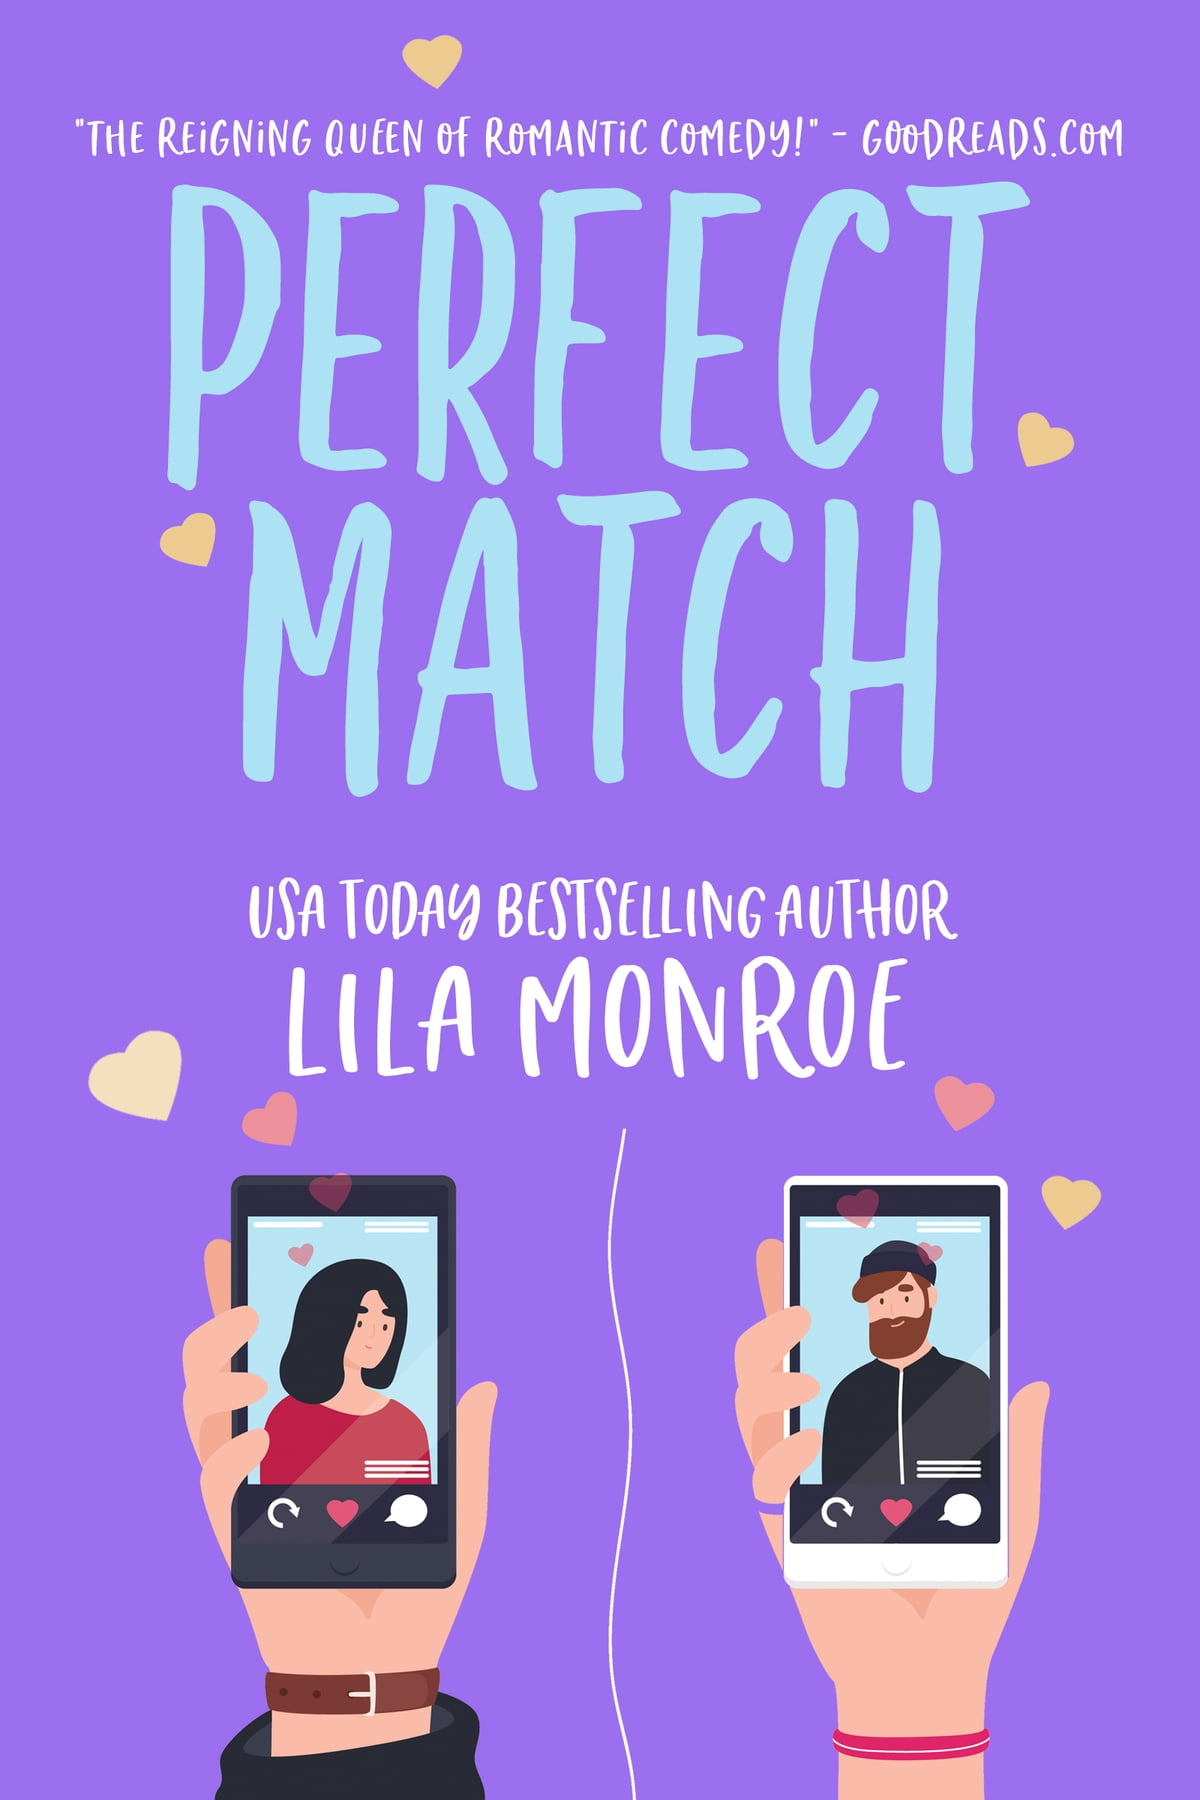 Como Descargar Libros En Goodreads Perfect Match Ebooks By Lila Monroe Rakuten Kobo